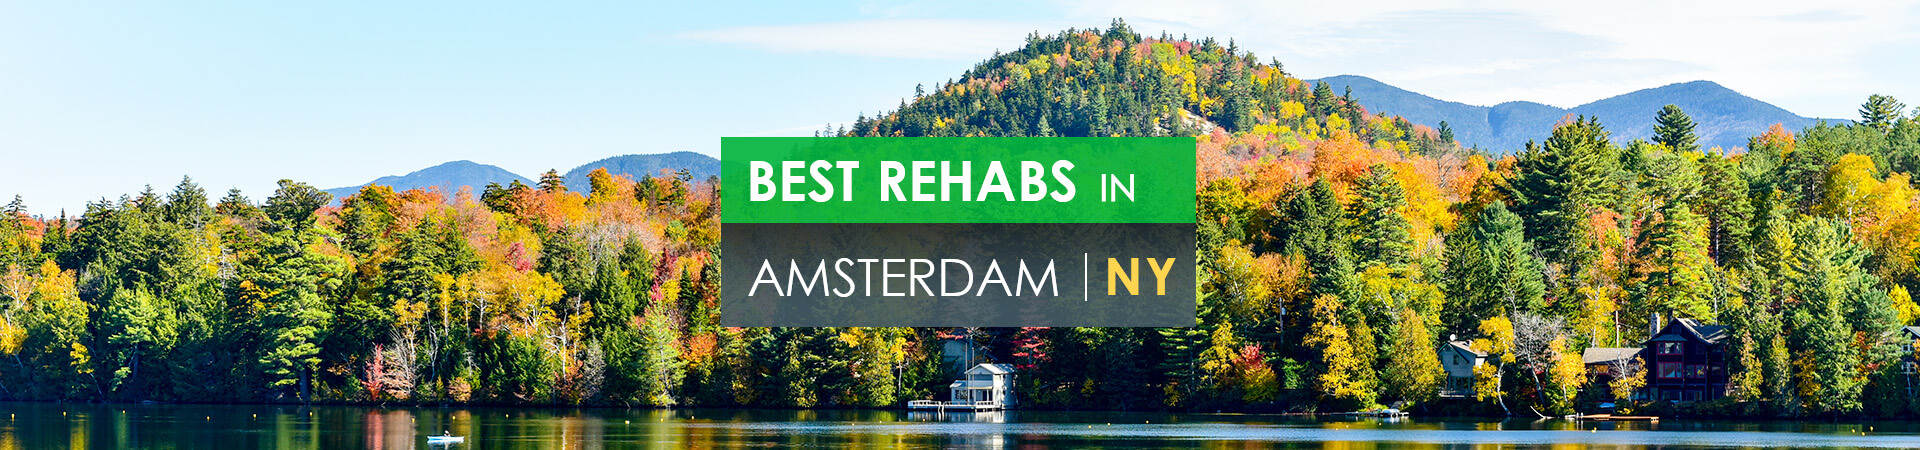 Best rehabs in Amsterdam, NY